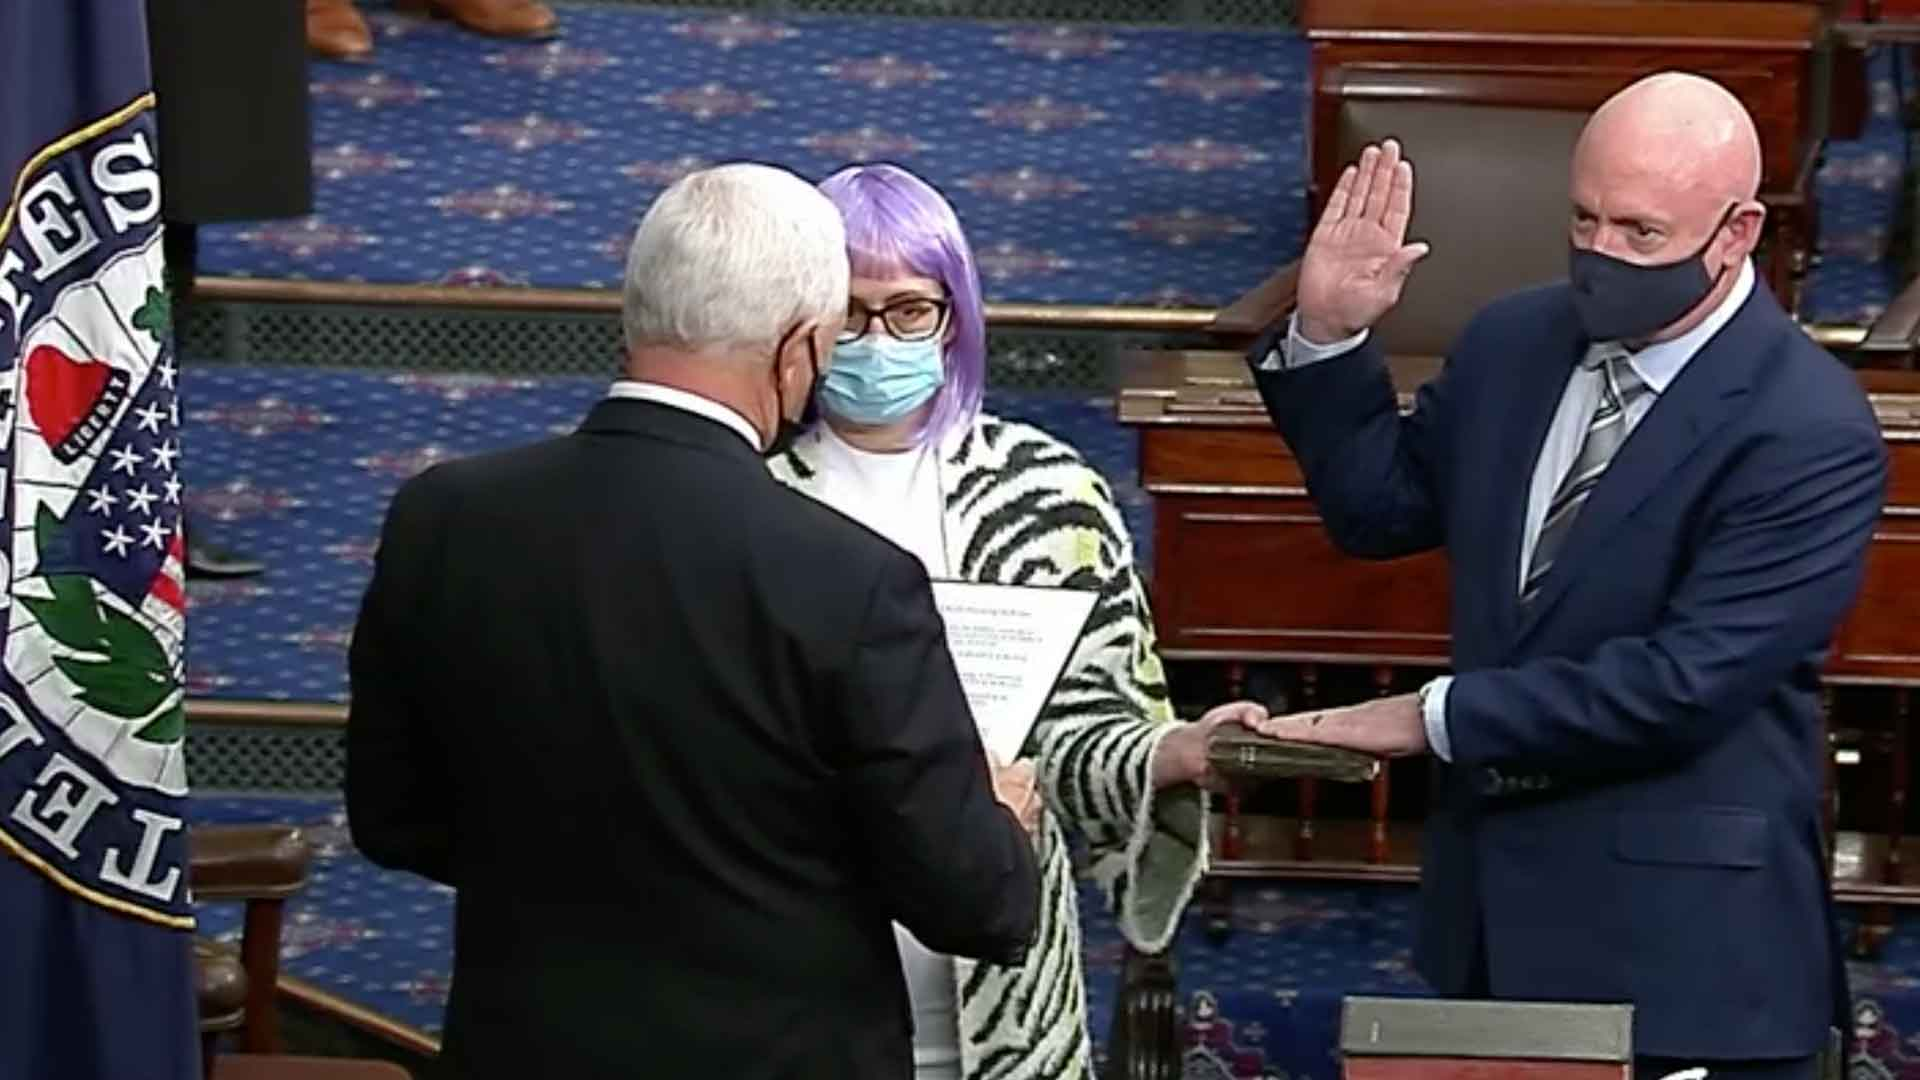 Sen. Mark Kelly is sworn into office by Vice President Mike Pence on Dec. 2, 2020.  Kelly was joined by Sen. Kyrsten Sinema.